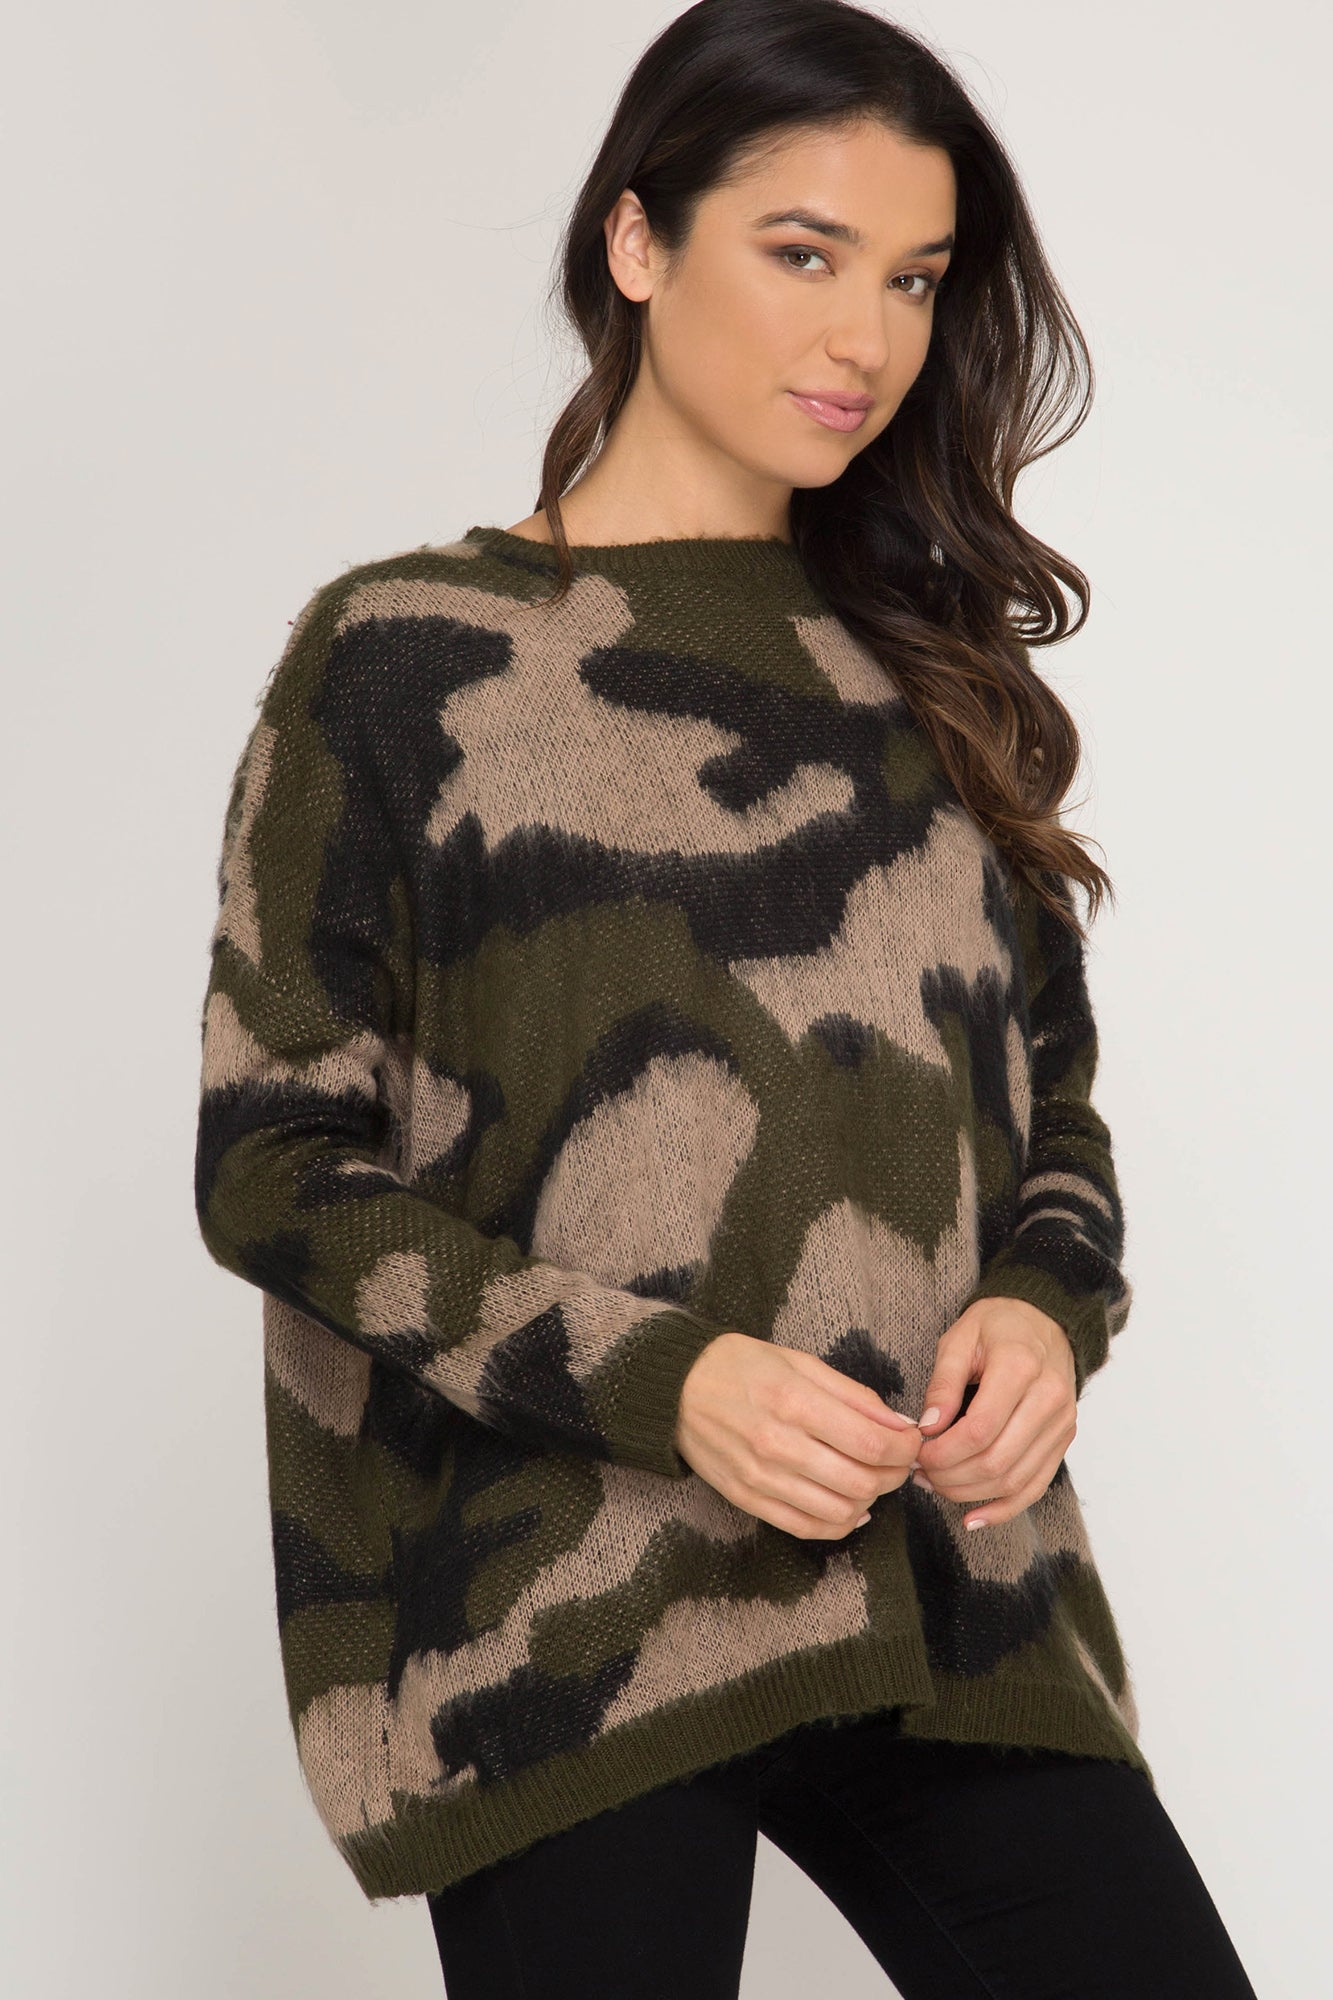 Camo  One / Size Sweater